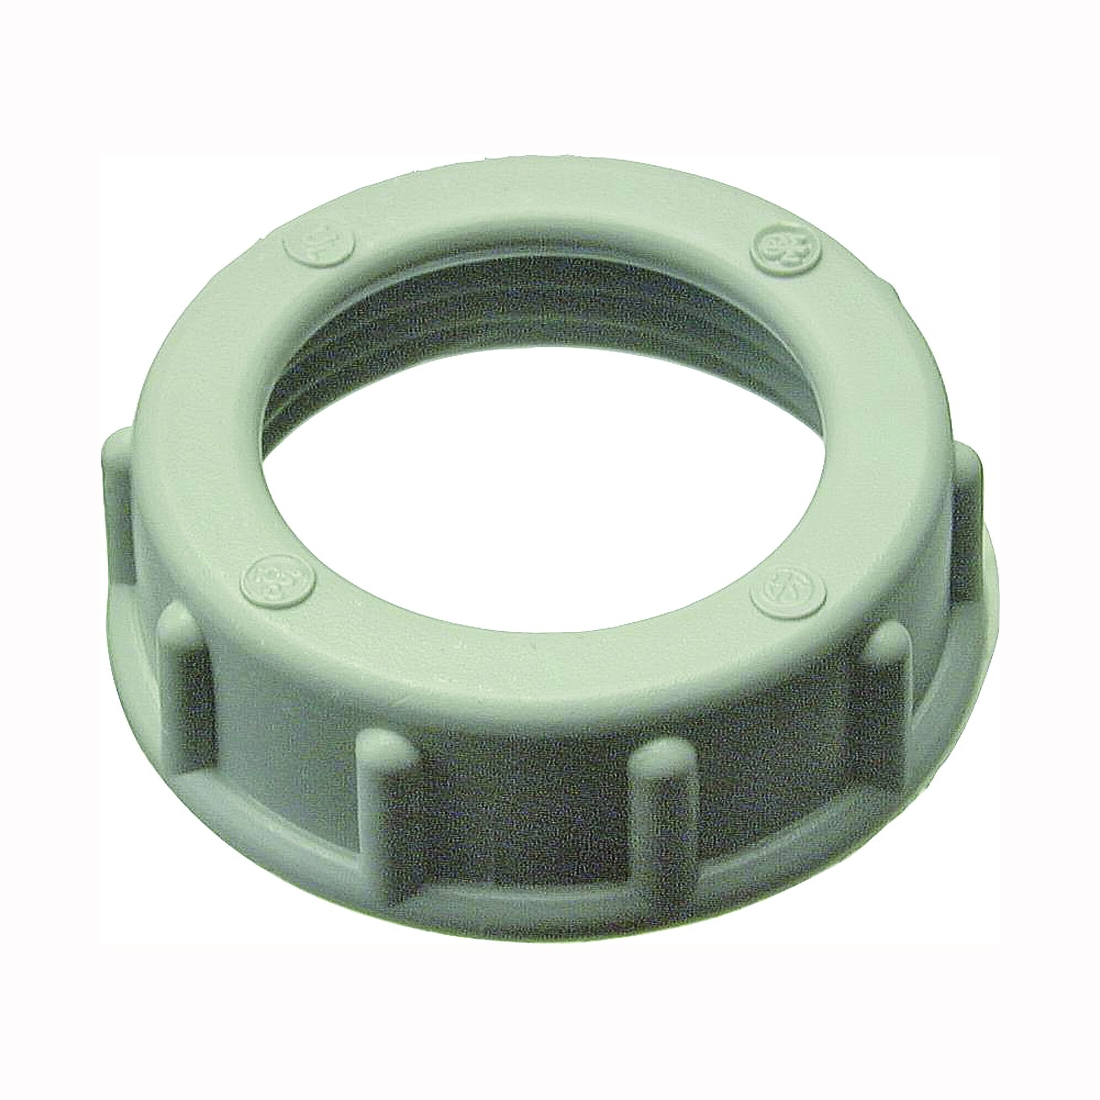 Picture of Halex 97526 Conduit Bushing, 2 in Trade, Thermoplastic